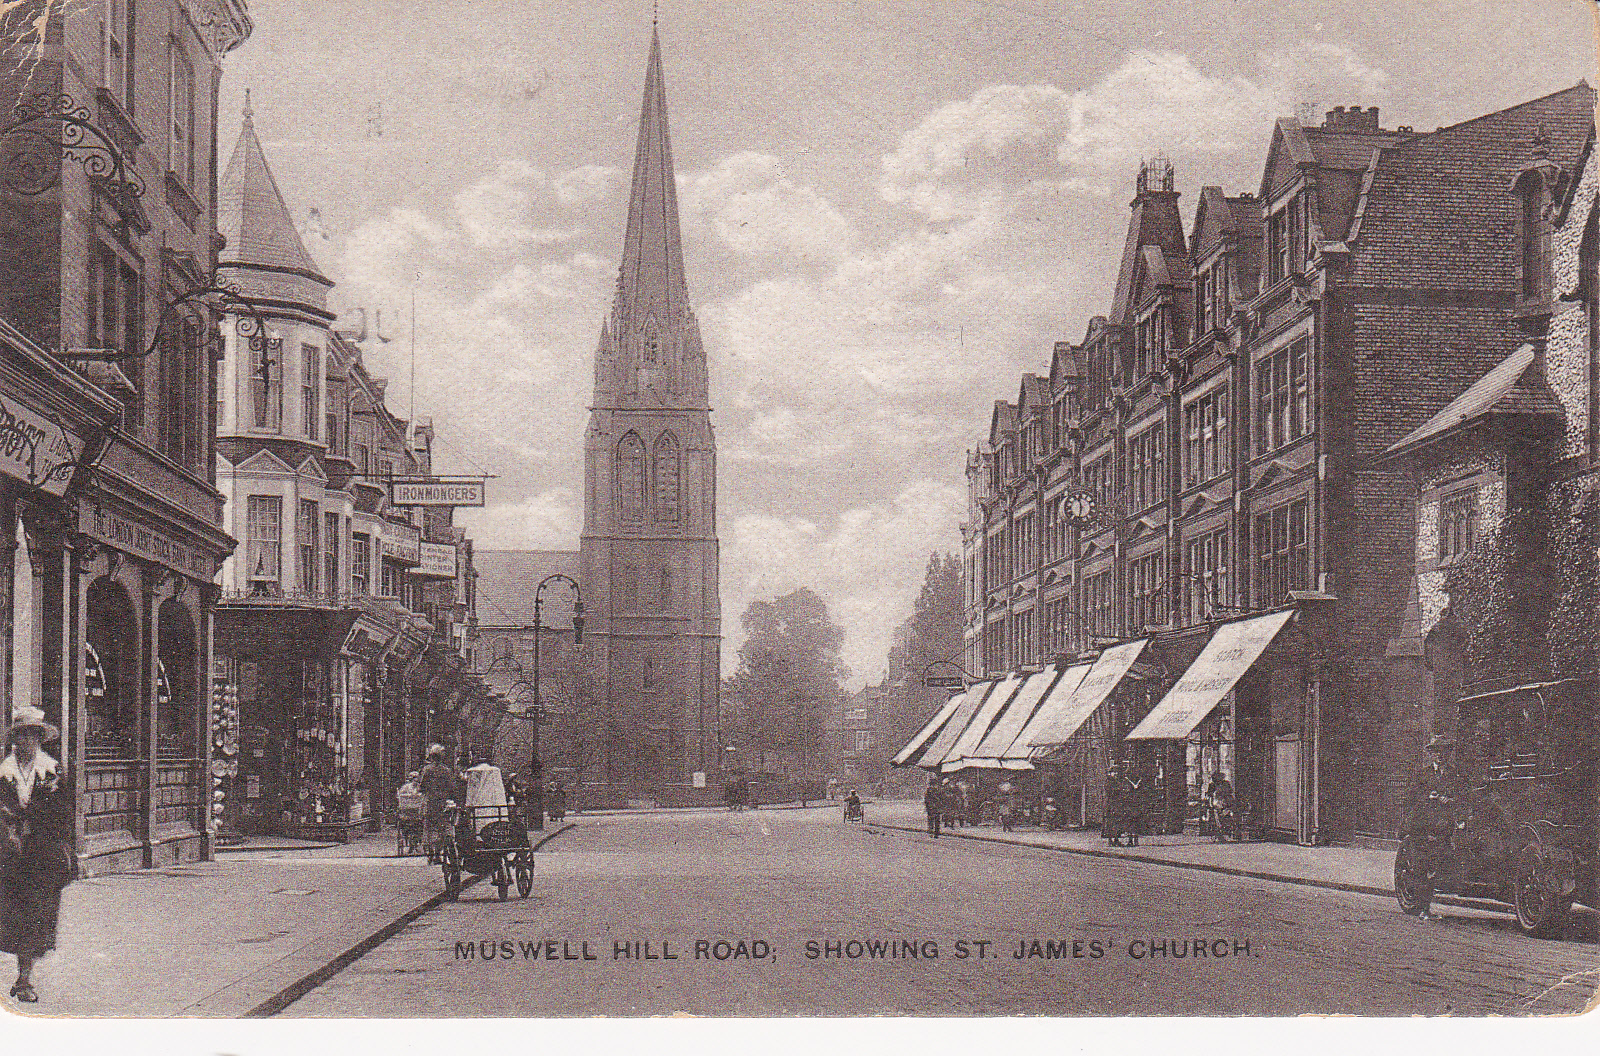 Muswell Hill Broadway 1923